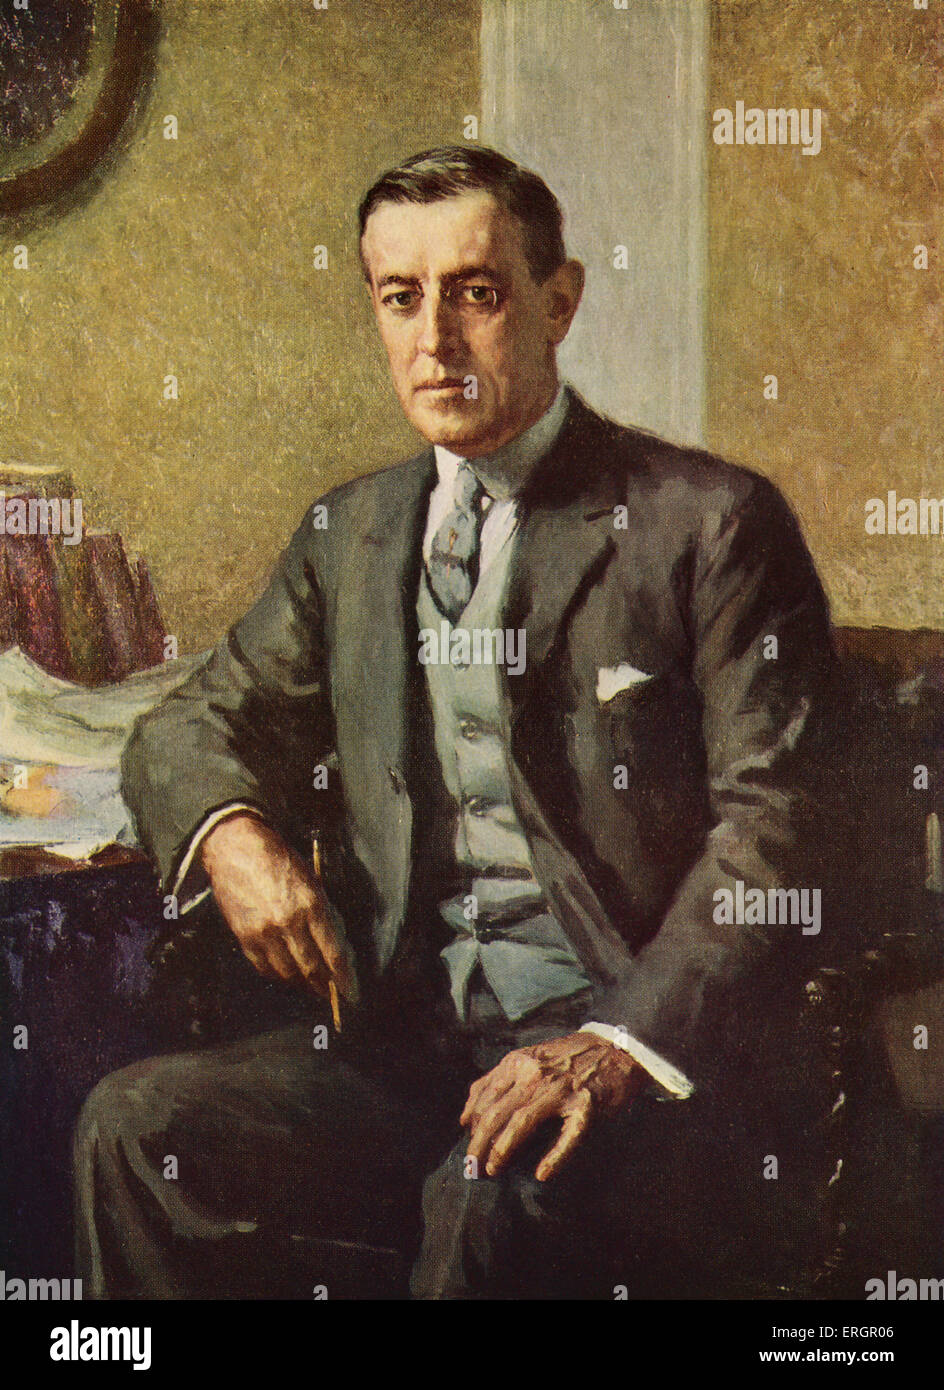 Thomas Woodrow Wilson, portrait. 28th President of the United States, 1856-1924. After the oil painting by Stephen - Stock Image